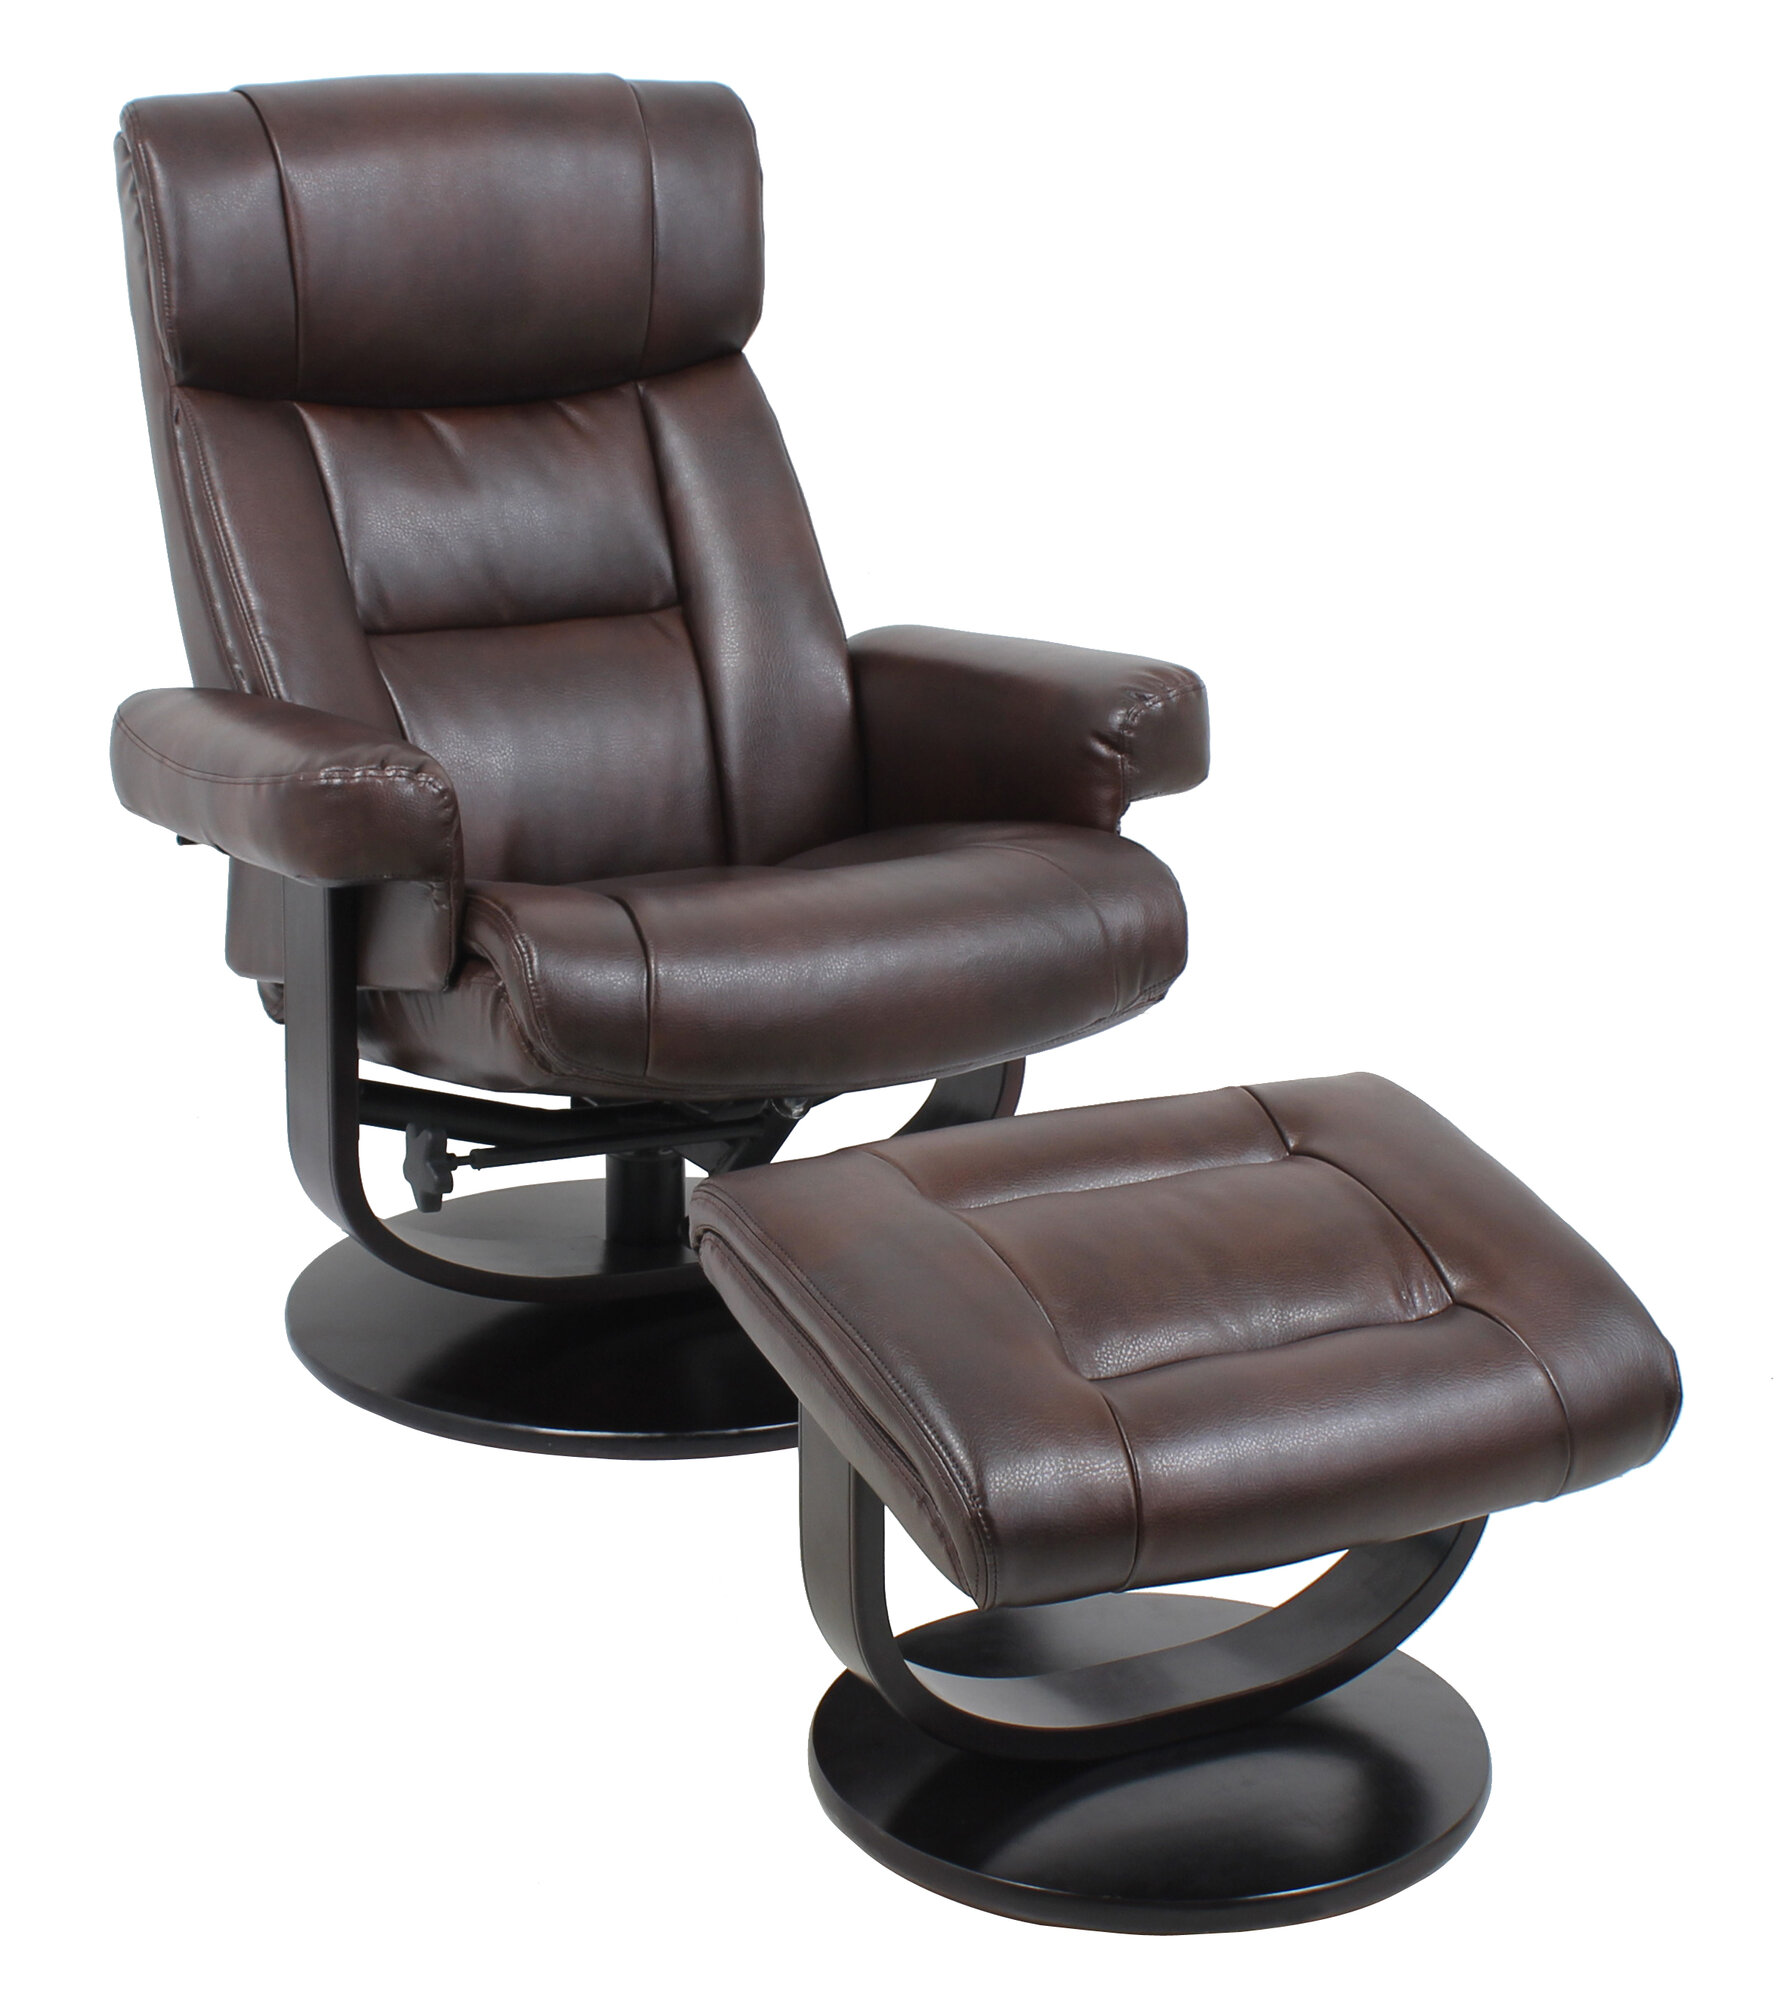 global furniture leather recliner and ottoman ebay